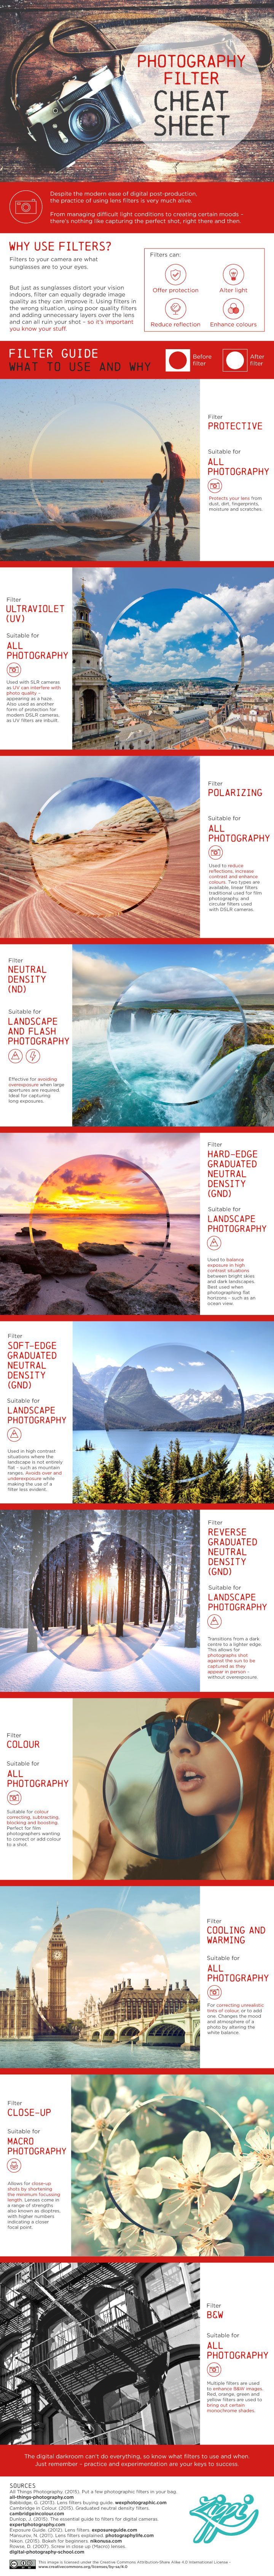 11 photography filters that will improve your images, and when to use them (free cheat sheet)